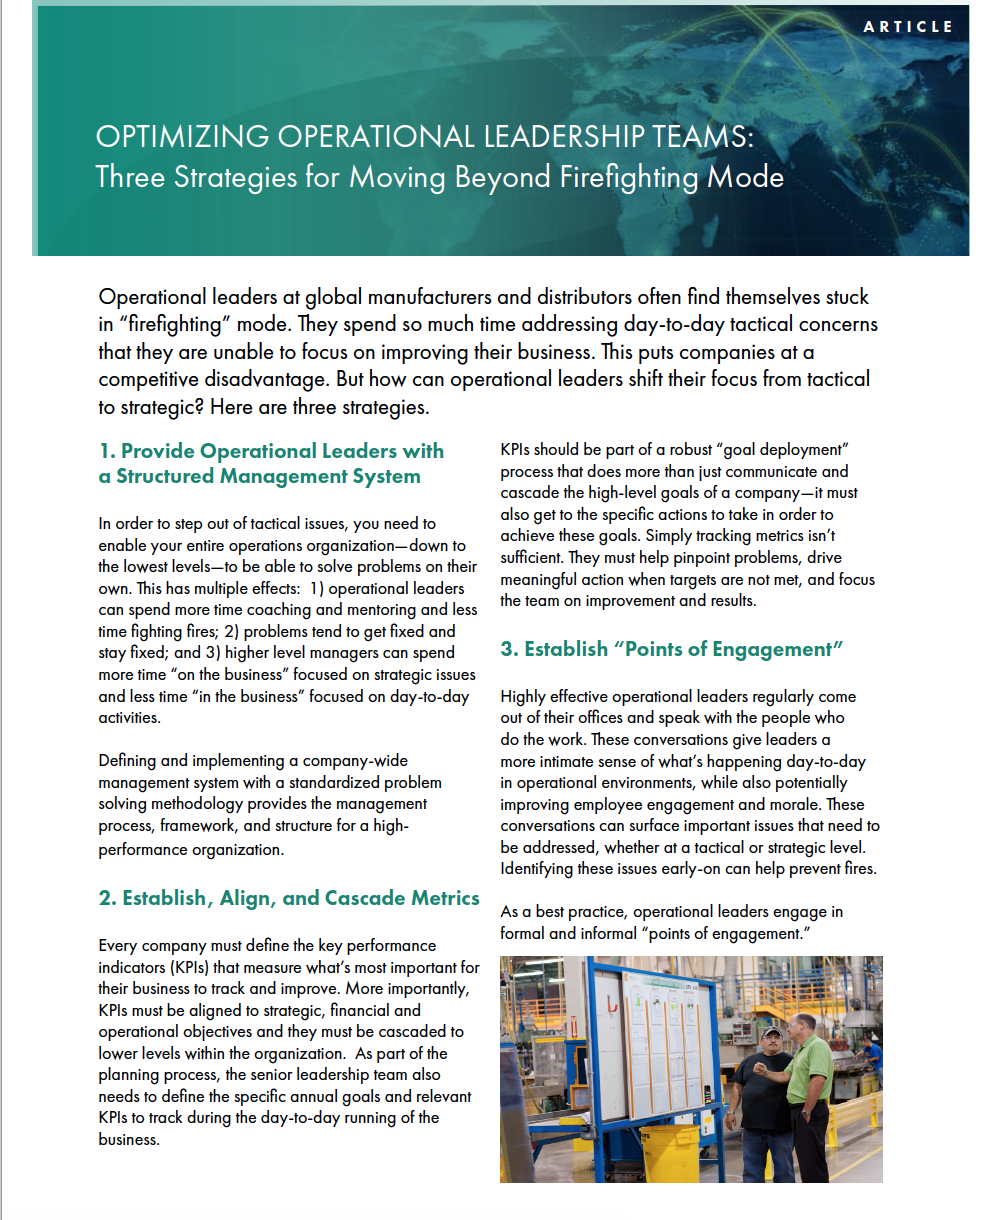 OPTIMIZING OPERATIONAL LEADERSHIP TEAMS: Three Strategies for Moving Beyond Firefighting Mode